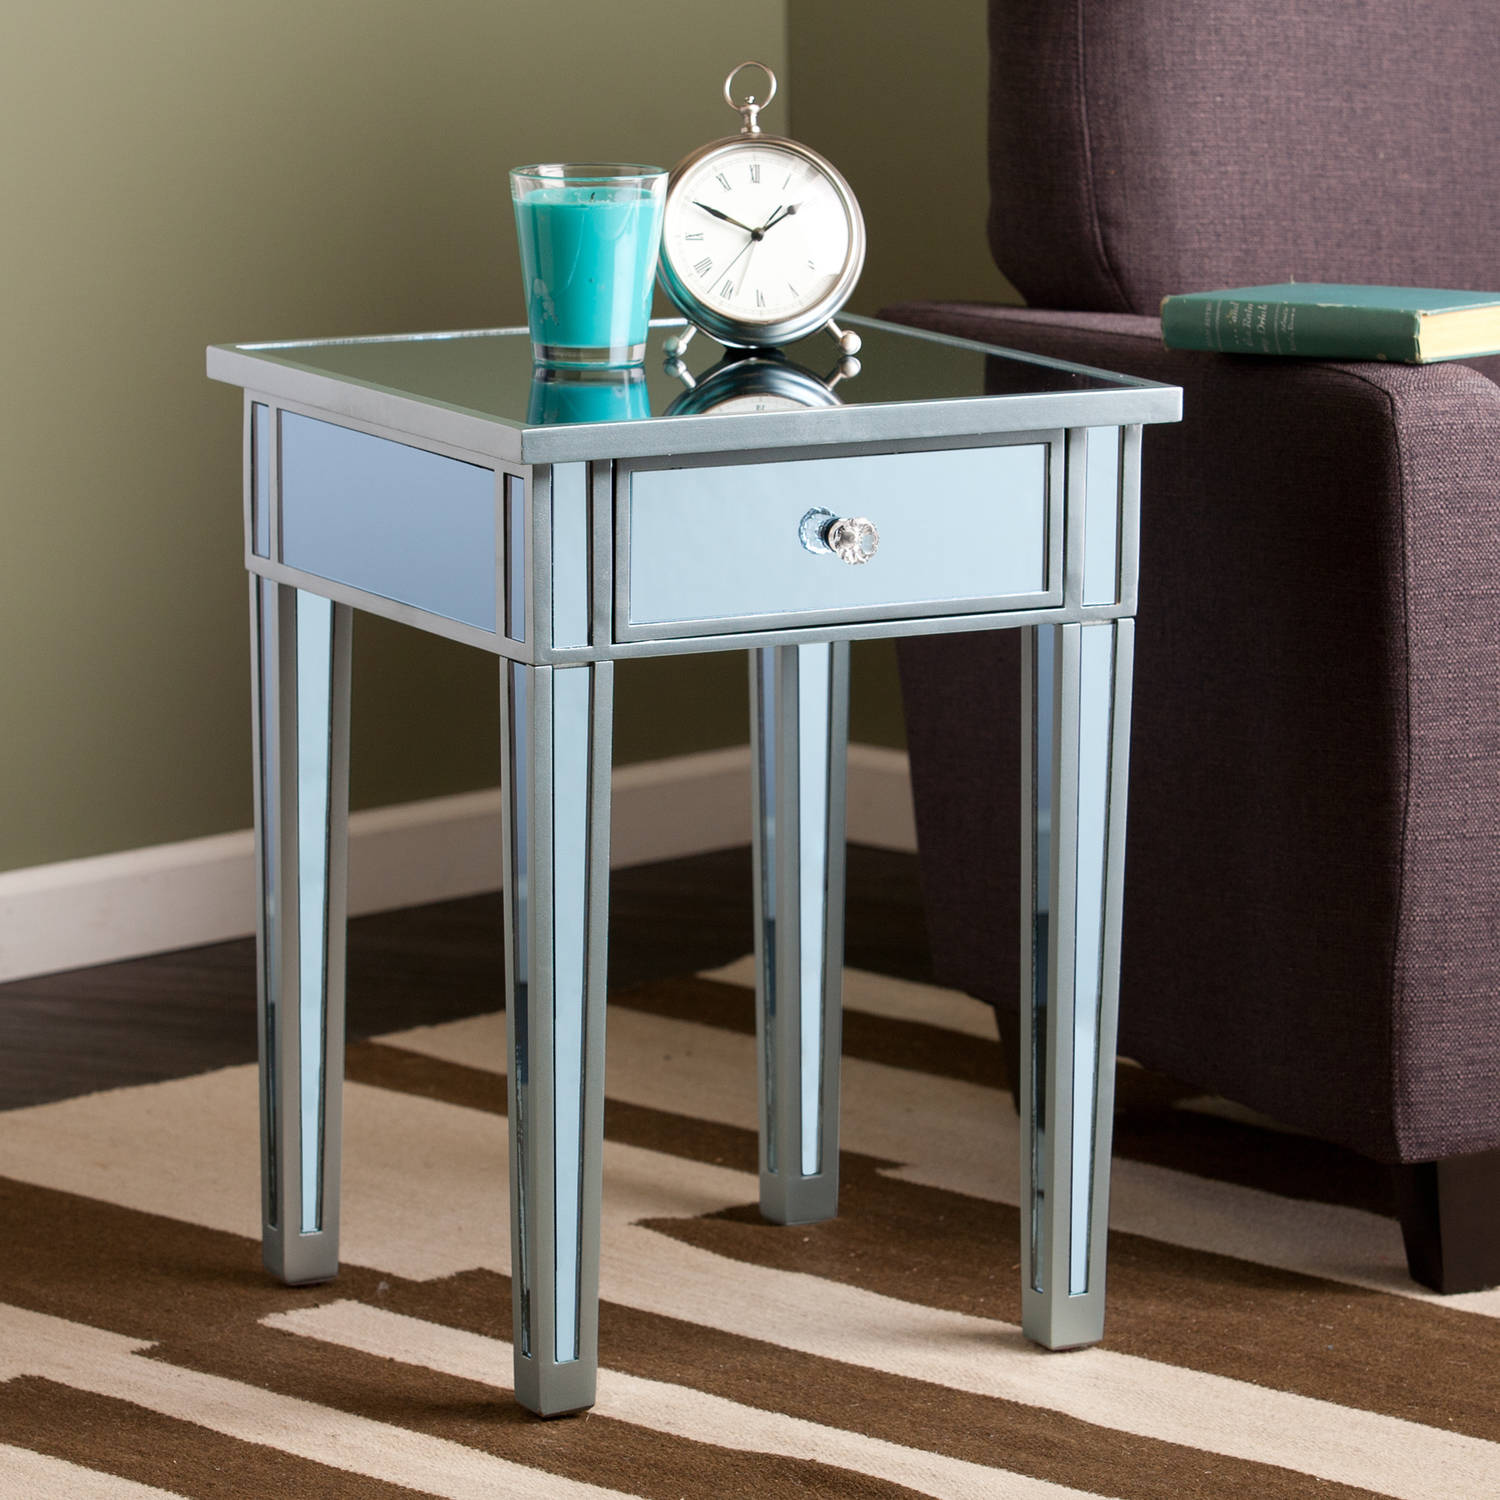 southern enterprises illusions colored mirror accent table blue hollywood mirrored cream coffee and end tables acacia wood furniture high kitchen chairs light oak lamp with drink